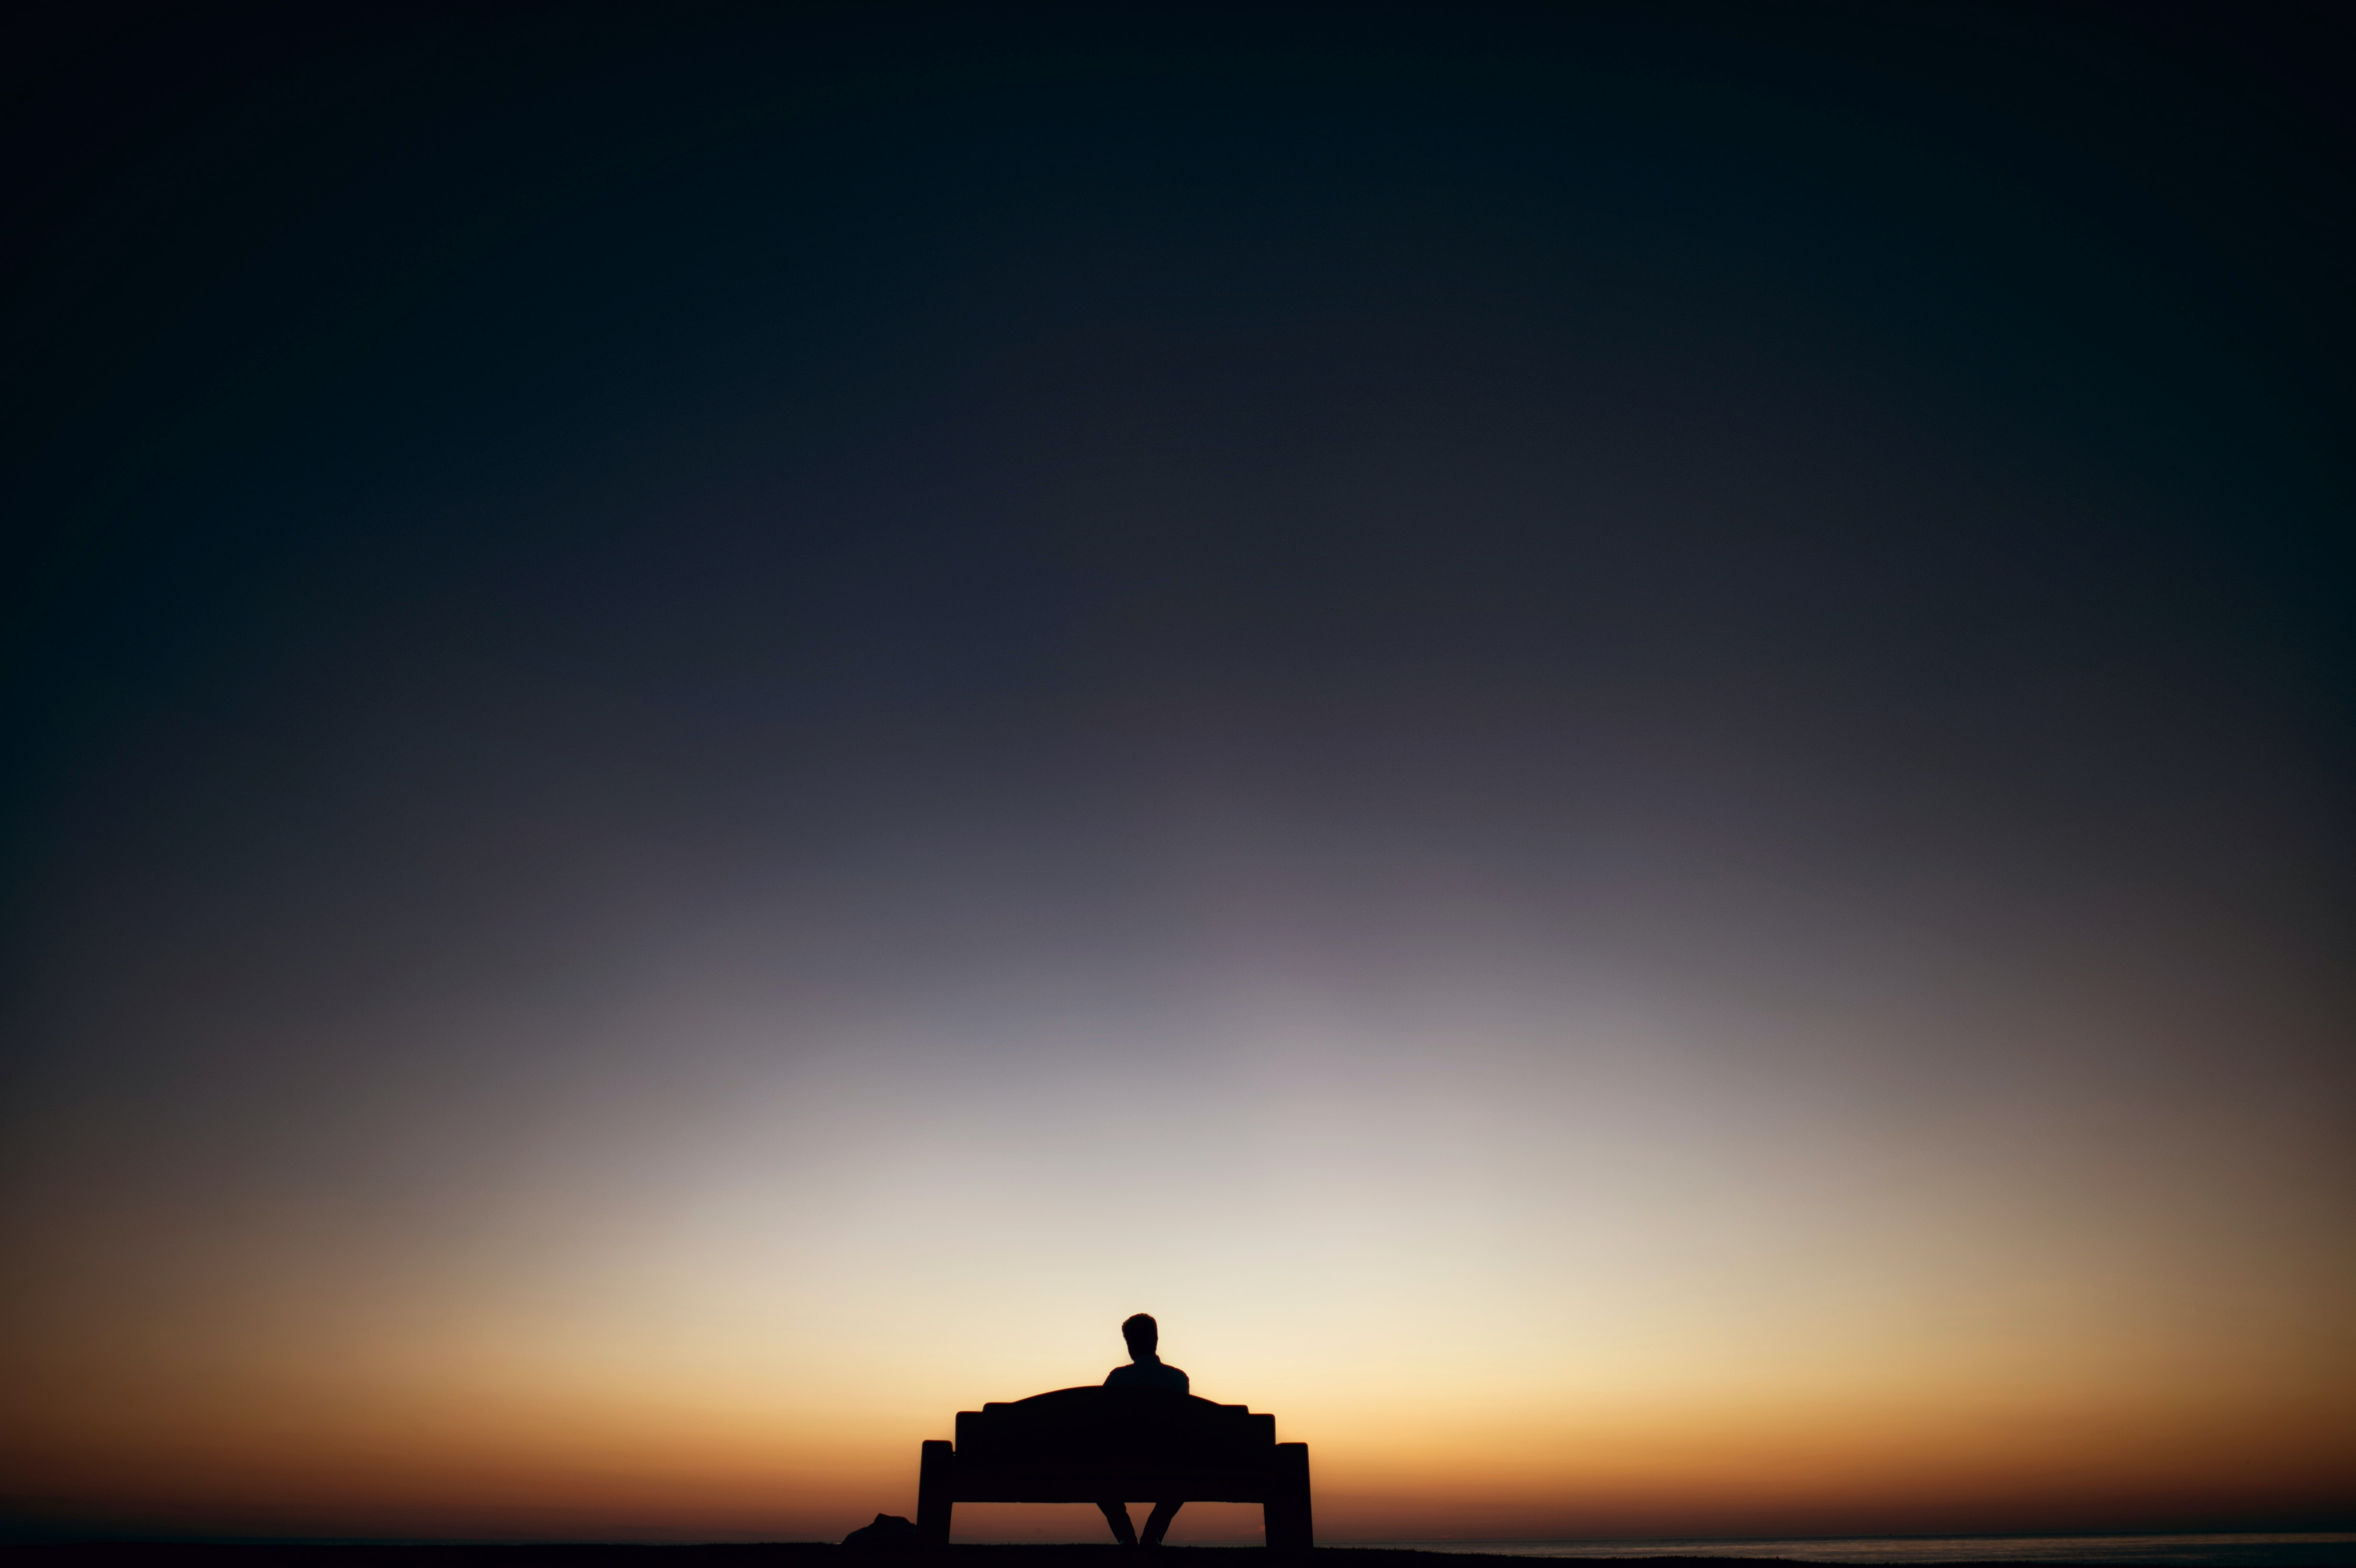 man sitting on bench facing sunset